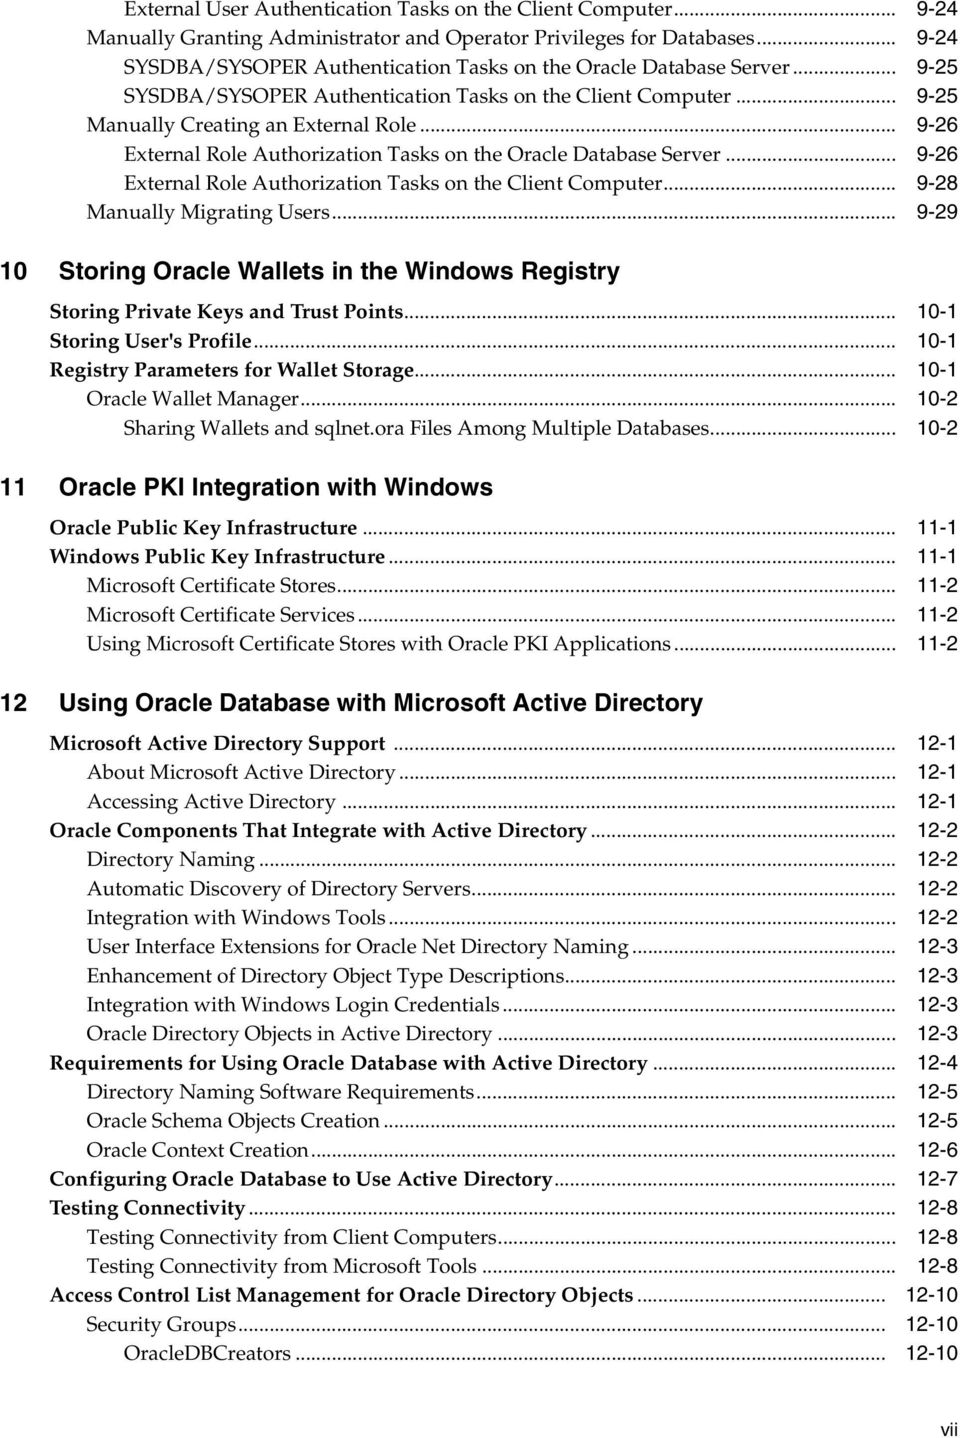 .. 9-26 External Role Authorization Tasks on the Oracle Database Server... 9-26 External Role Authorization Tasks on the Client Computer... 9-28 Manually Migrating Users.